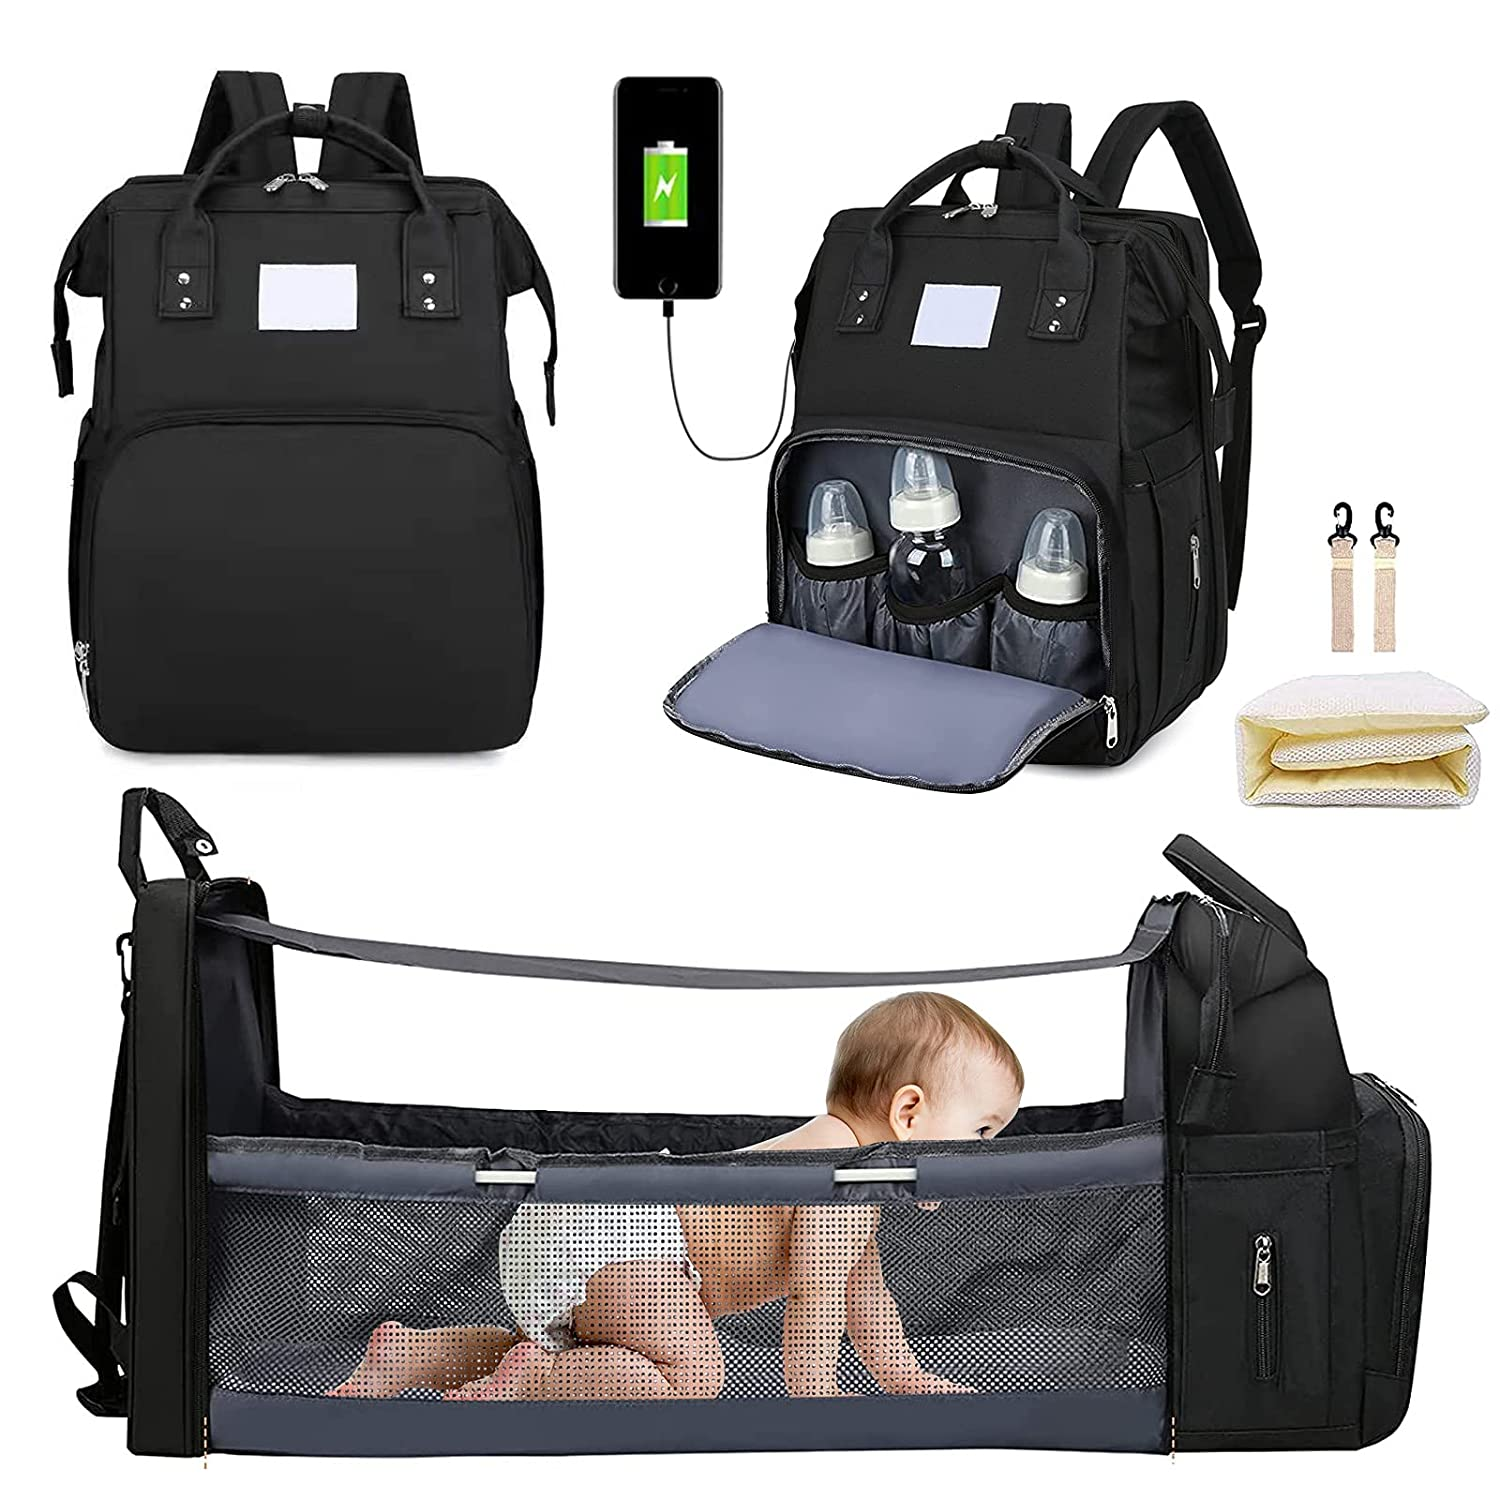 Diaper Bag Backpack, Diaper Bag with Changing Station, Baby Bed with USB Port, Diaper Bags for Baby Girl Boys, Waterproof Foldable Bassinet Baby Crib with Sunshade Stroller Straps (Black)